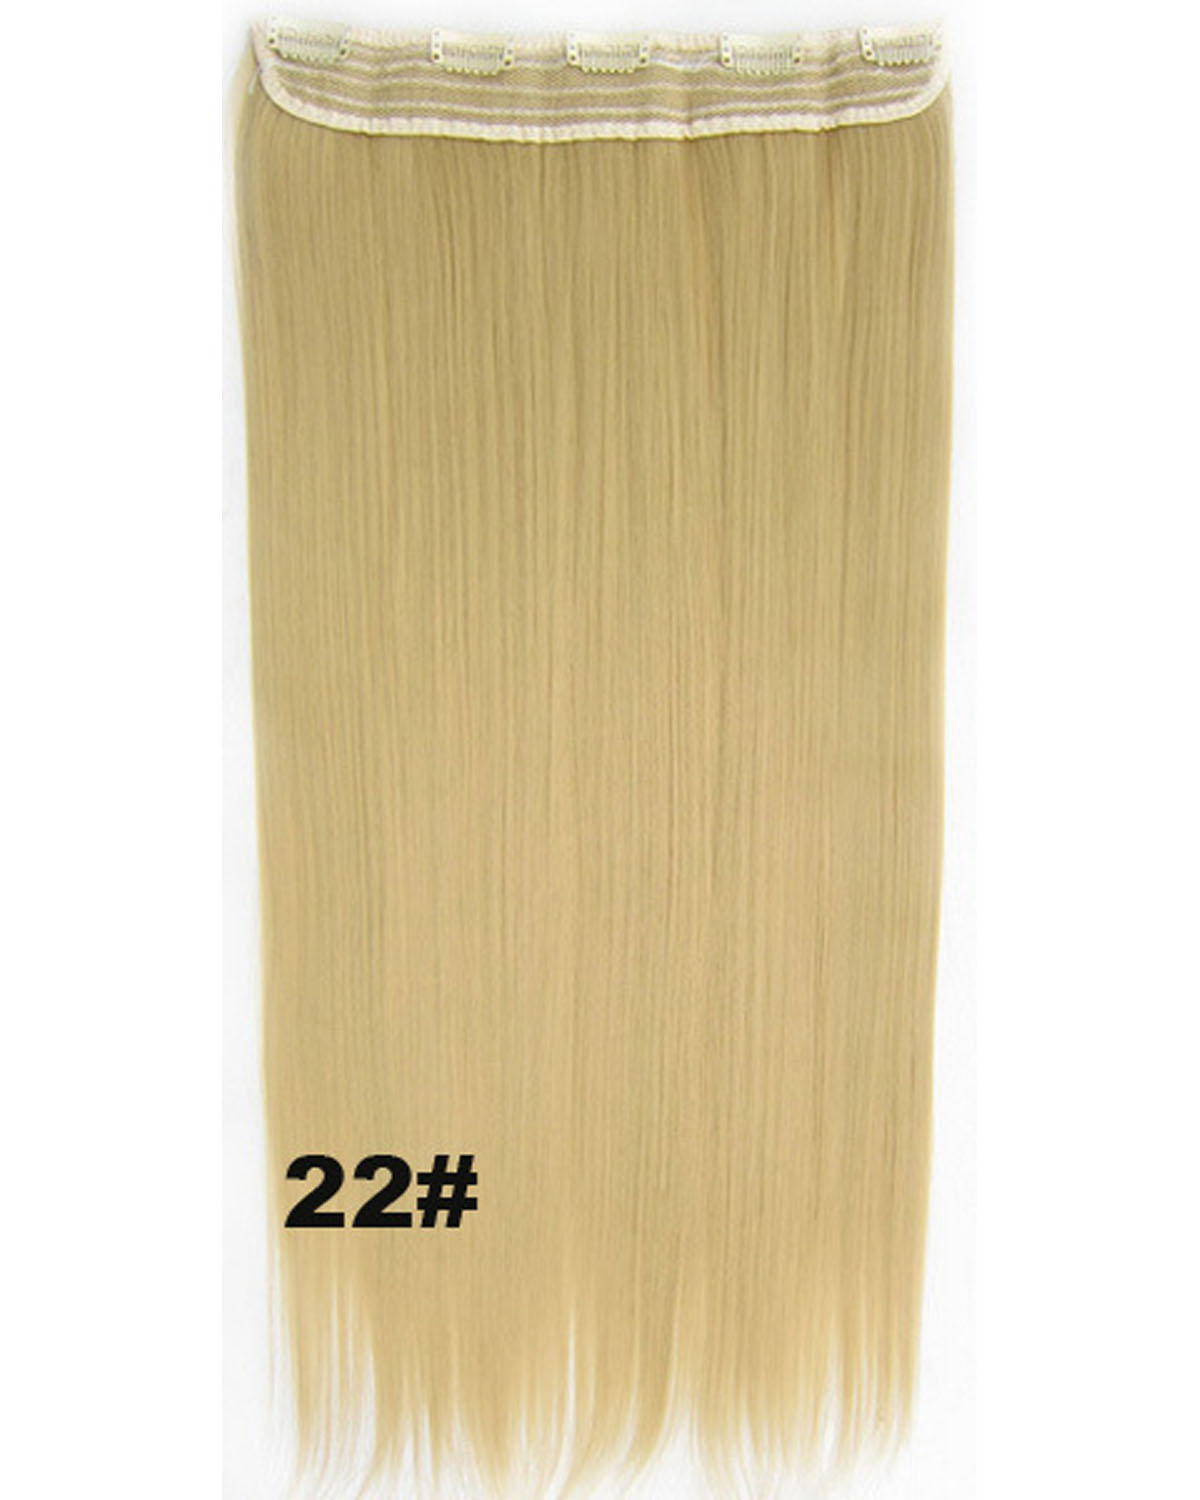 24 Inch Female Shining Long and Straight Hot-Sale One Piece 5 Clips Clip in Synthetic Hair Extension  22#